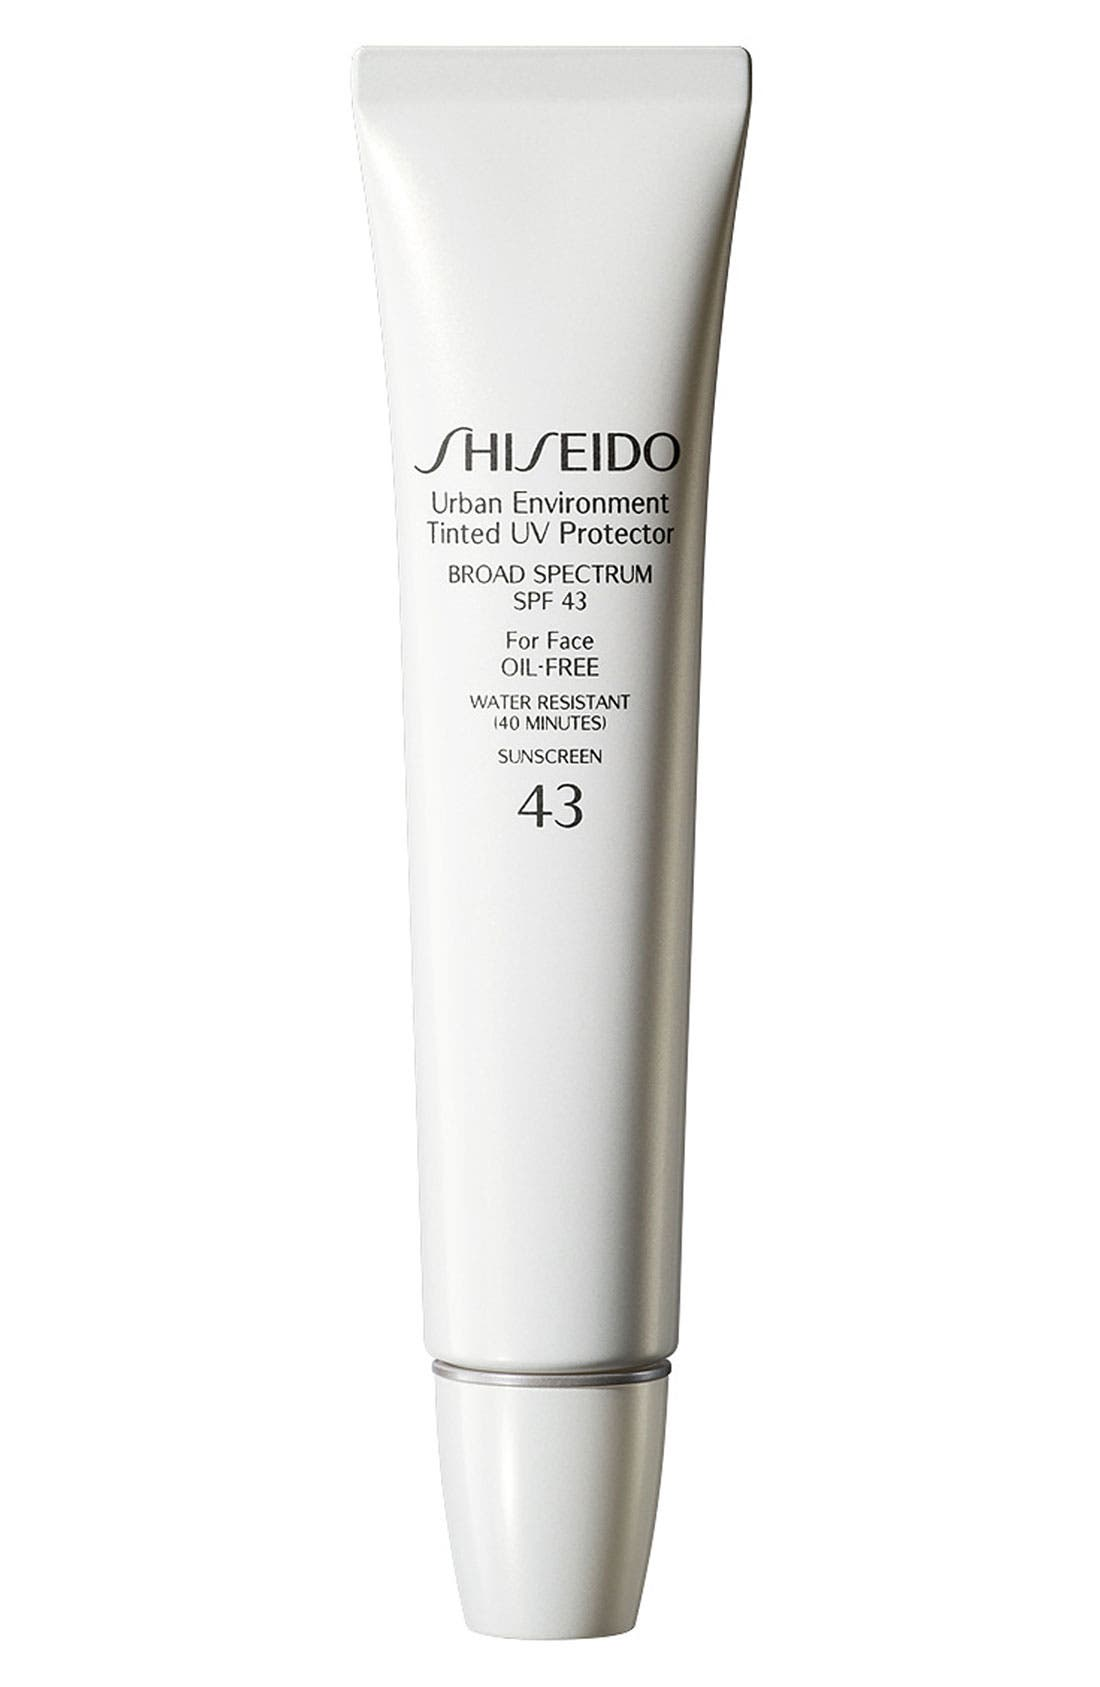 Shiseido 'Urban Environment' Tinted UV Protector Broad Spectrum SPF 43